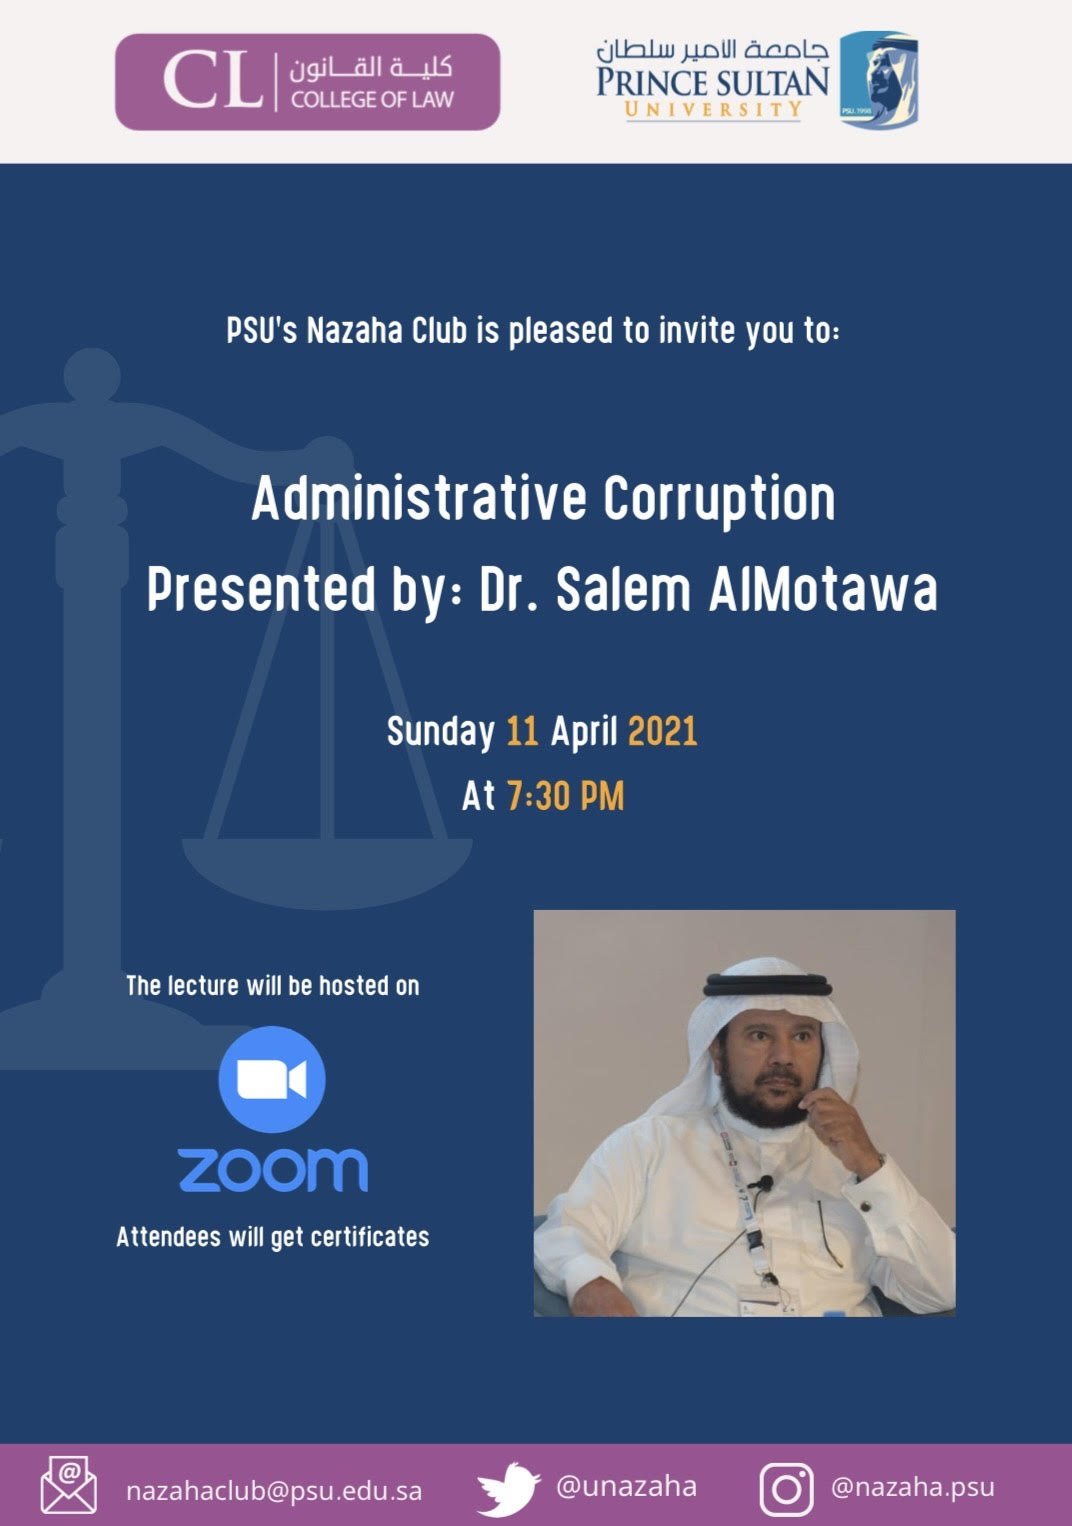 Administrative Corruption presented by: Dr.Salem Almotawa